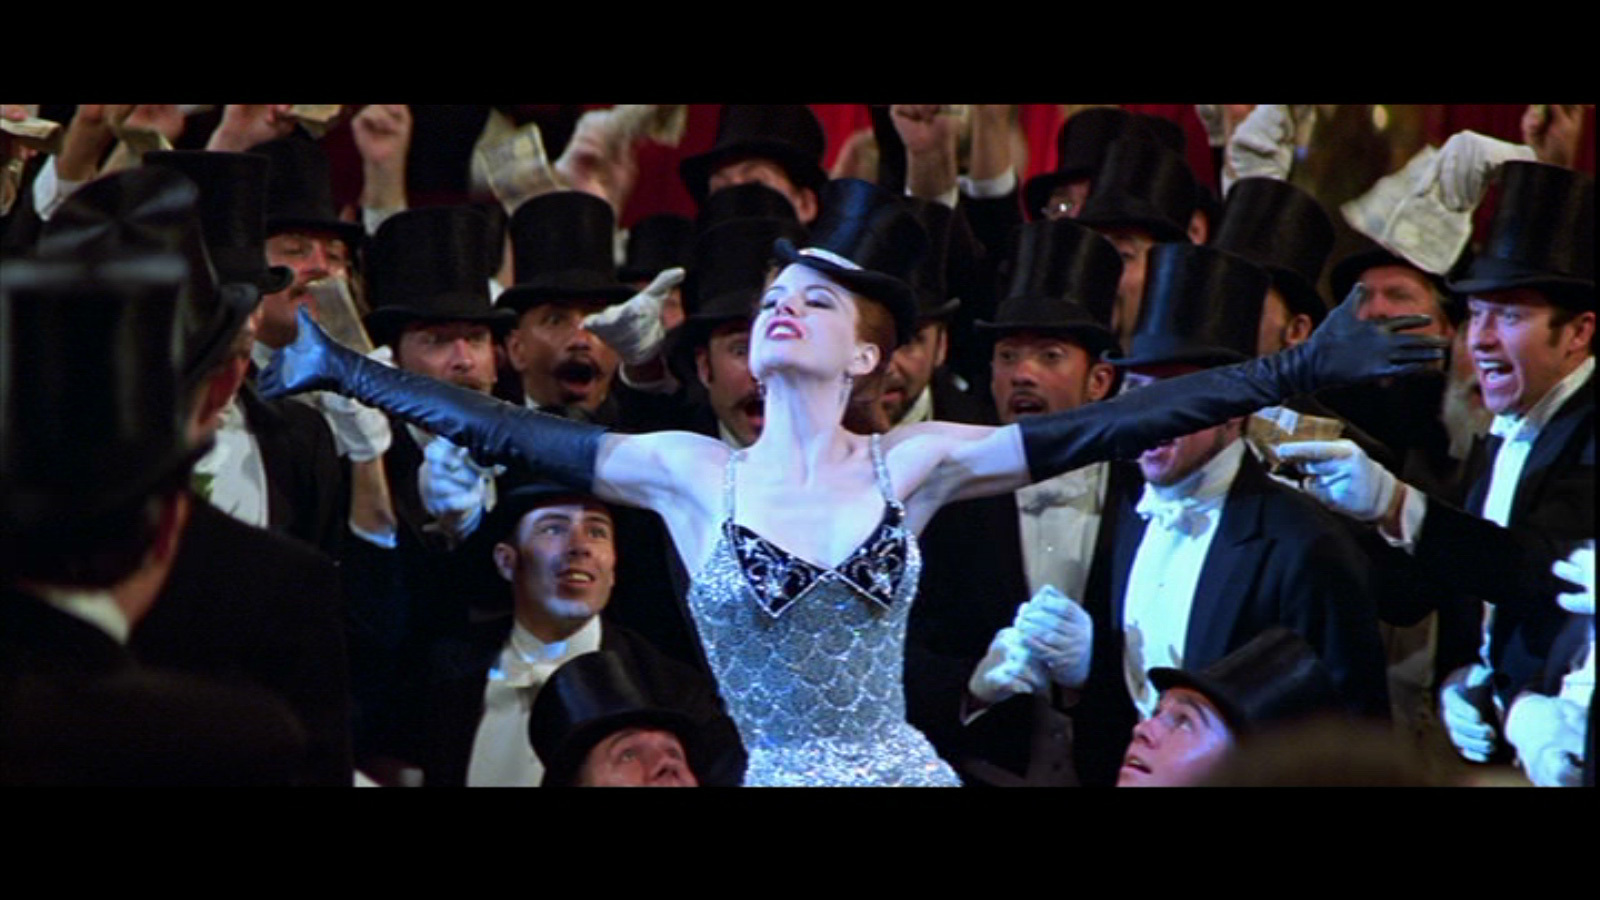 The movie moulin rouge